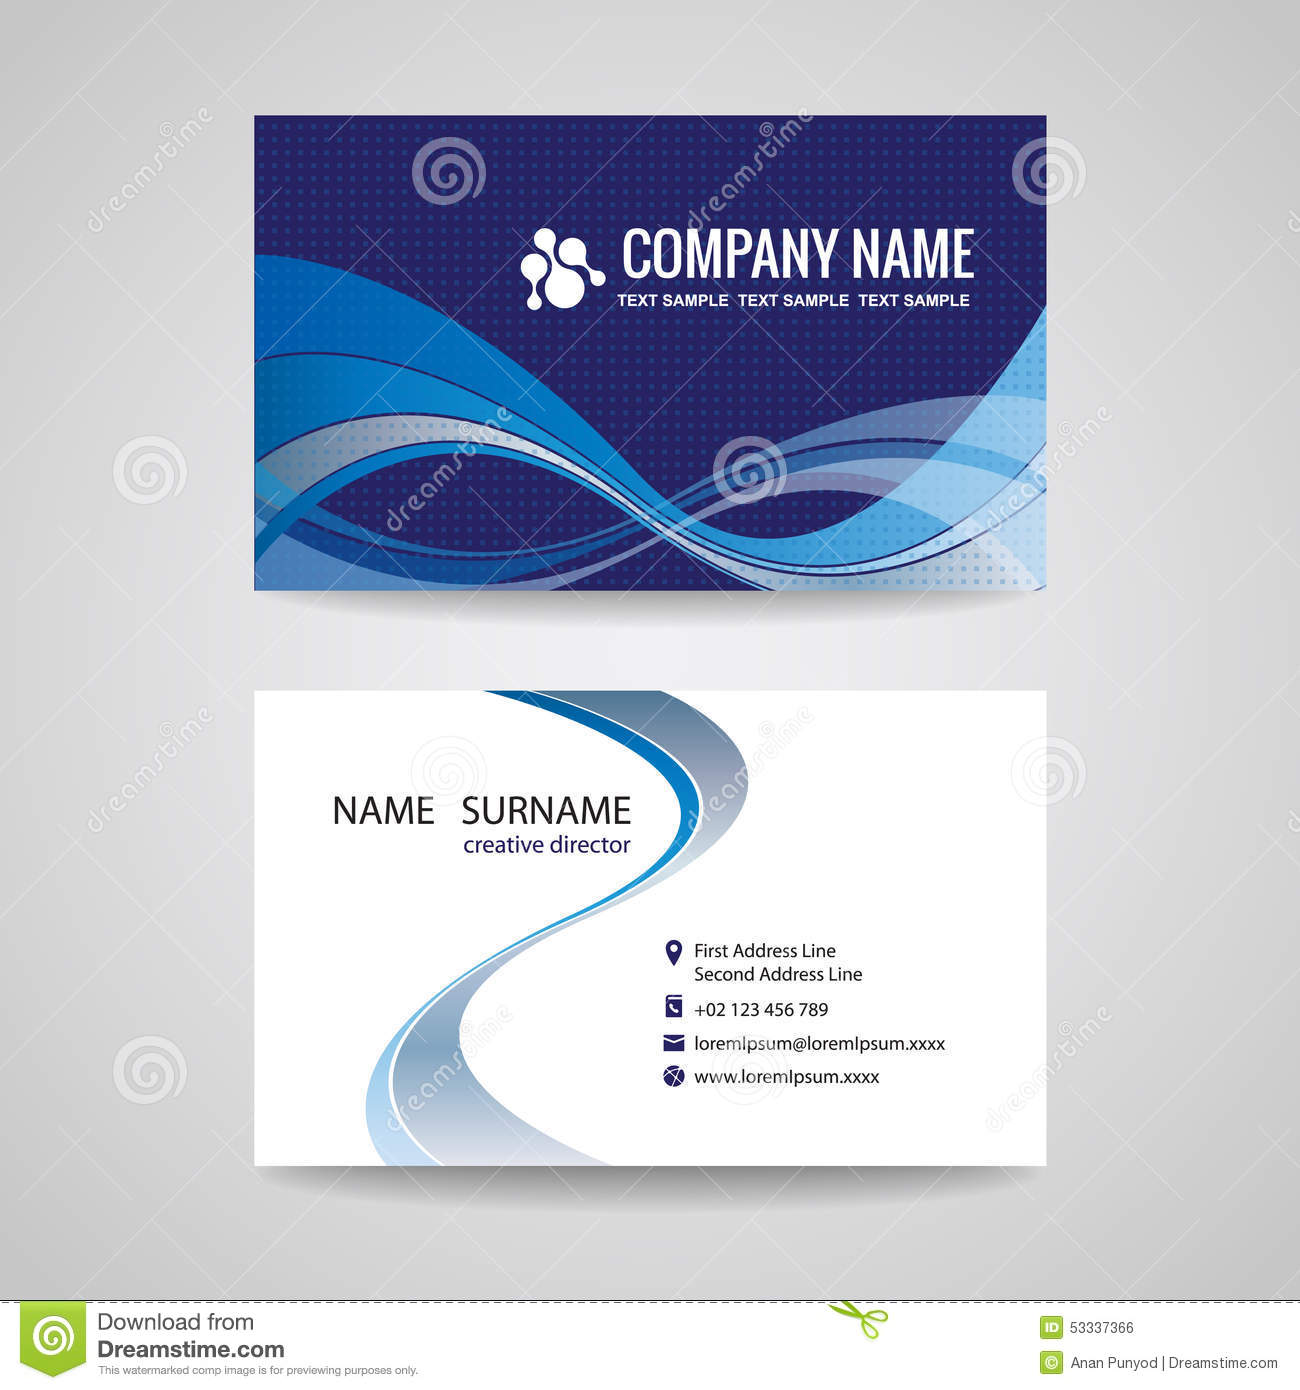 Blue wave modern business card design stock vector illustration of business card template abstract blue wave design royalty free stock image reheart Choice Image